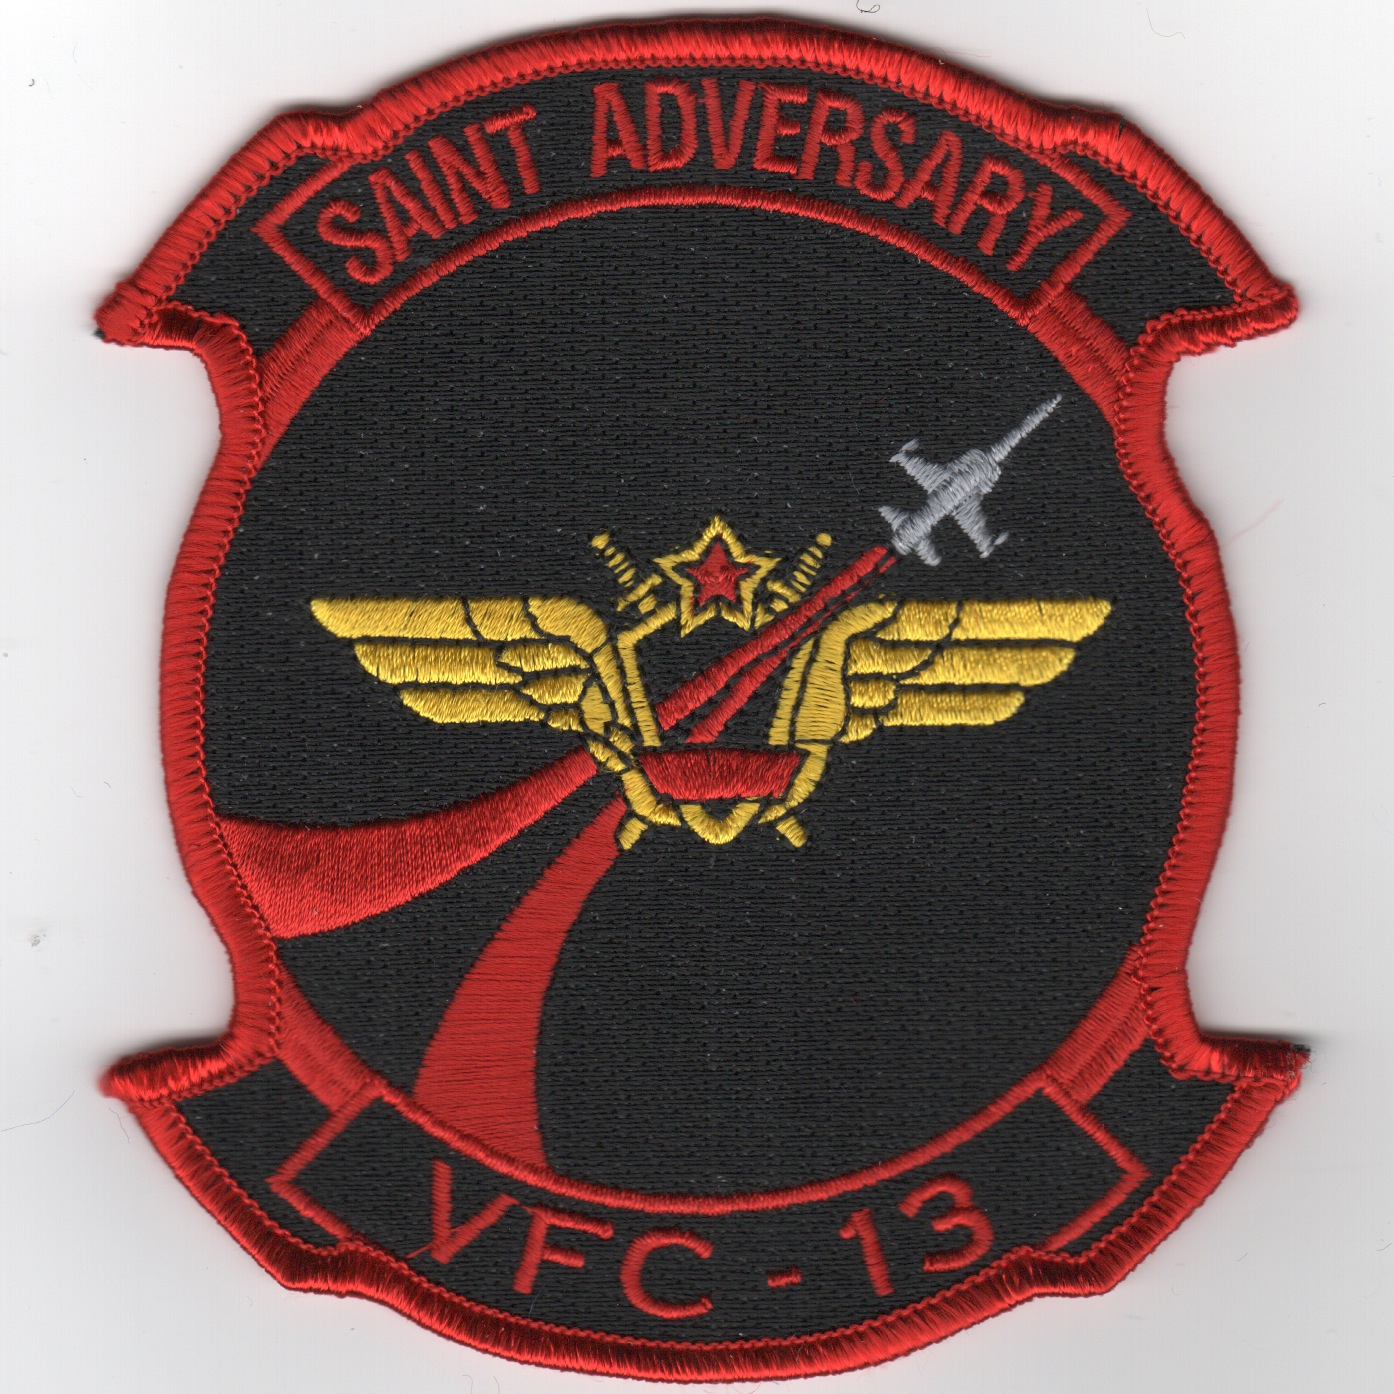 VFC-13 Adversary Squadron Patch (Red/Black)